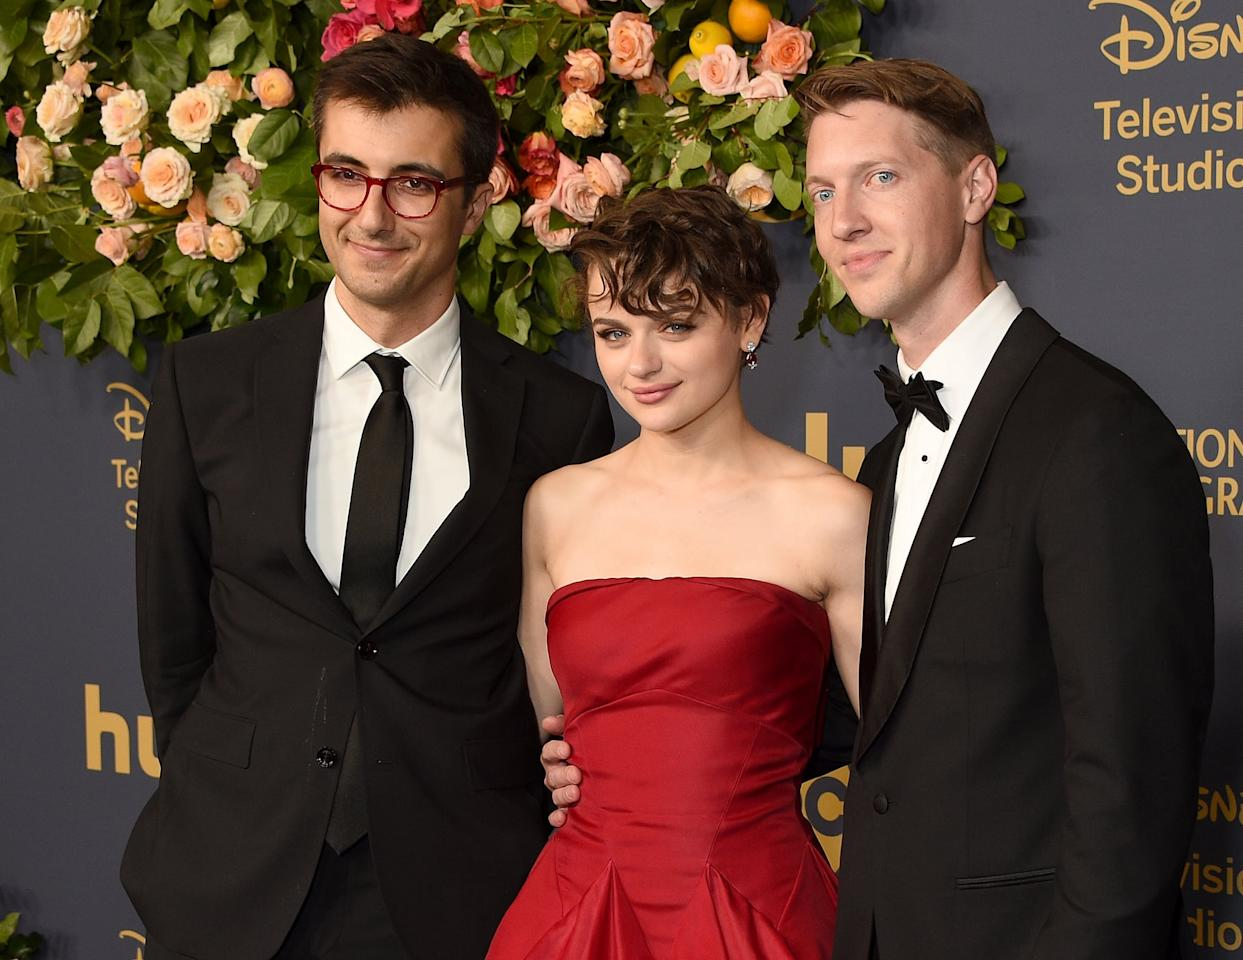 """<p>After her breakup with Jacob, Joey reportedly began seeing Steven Piet (right), whom she met while working on <strong>The Act</strong>. Steven was a producer on the Emmy-nominated miniseries, which starred Joey as Gypsy Rose Blanchard, a woman who suffered Munchausen's by proxy at the hands of her mother and rebelled with violent results.</p> <p>According to <strong>E! News</strong>, <a href=""""http://www.eonline.com/news/1069988/joey-king-cuddles-up-to-boyfriend-the-act-exec-steven-piet"""" target=""""_blank"""" class=""""ga-track"""" data-ga-category=""""Related"""" data-ga-label=""""http://www.eonline.com/news/1069988/joey-king-cuddles-up-to-boyfriend-the-act-exec-steven-piet"""" data-ga-action=""""In-Line Links"""">the couple were spotted cozying up</a> during a screening of <strong>Harry Potter and the Chamber of Secrets</strong> in September, apparently on a triple date alongside Joey's sisters and their dates.</p> <p>""""They were very affectionate and were with her two sisters sitting watching the movie together. Joey and Steven cuddled the entire time and looked very happy together,"""" a source revealed. """"They had snacks and drinks and were laughing with her sisters.""""</p> <p>Steven and Joey were also seen together on the red carpet at the Walt Disney Studios Emmys party, where they were technically both there as nominees from <strong>The Act</strong>.</p>"""